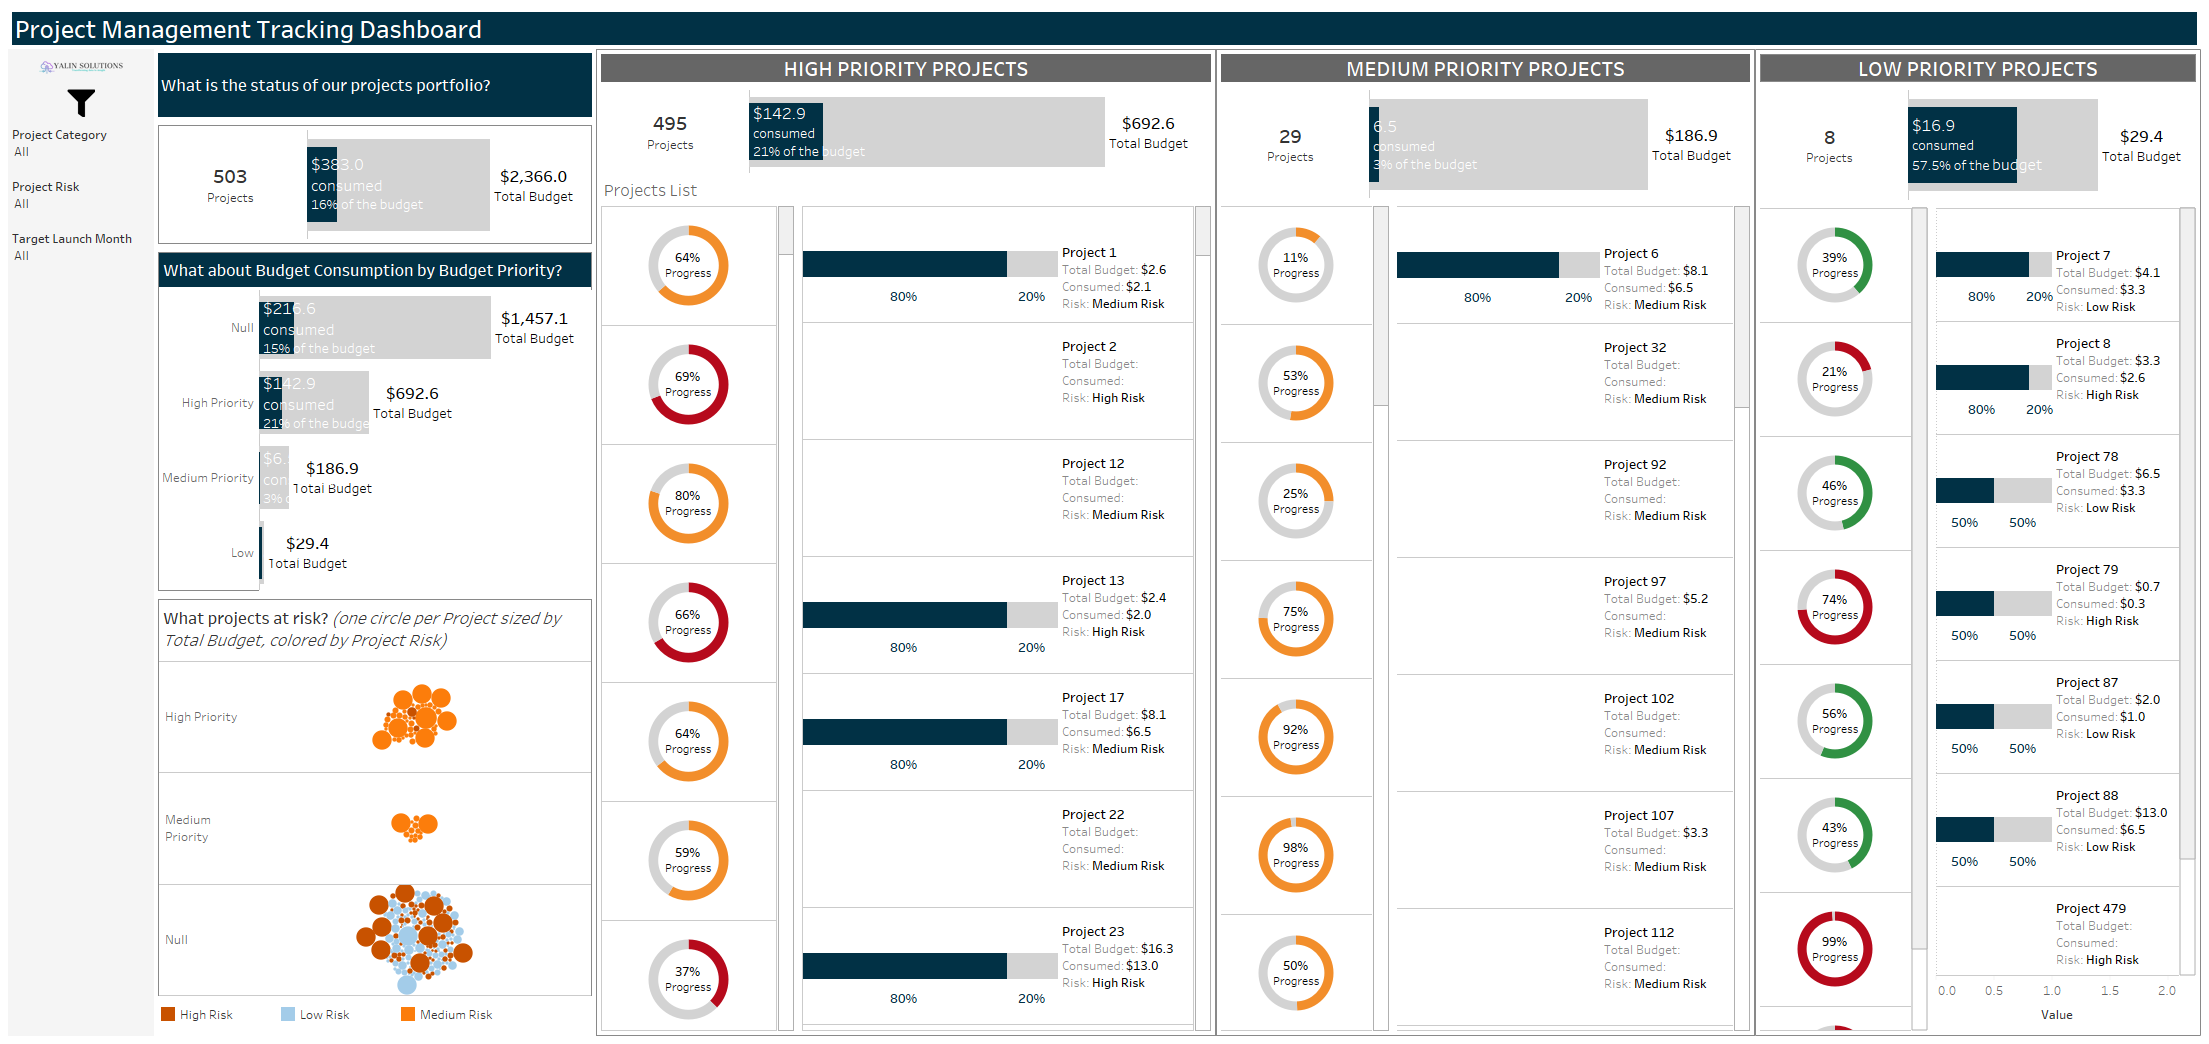 Project Management Tracking Dashboard